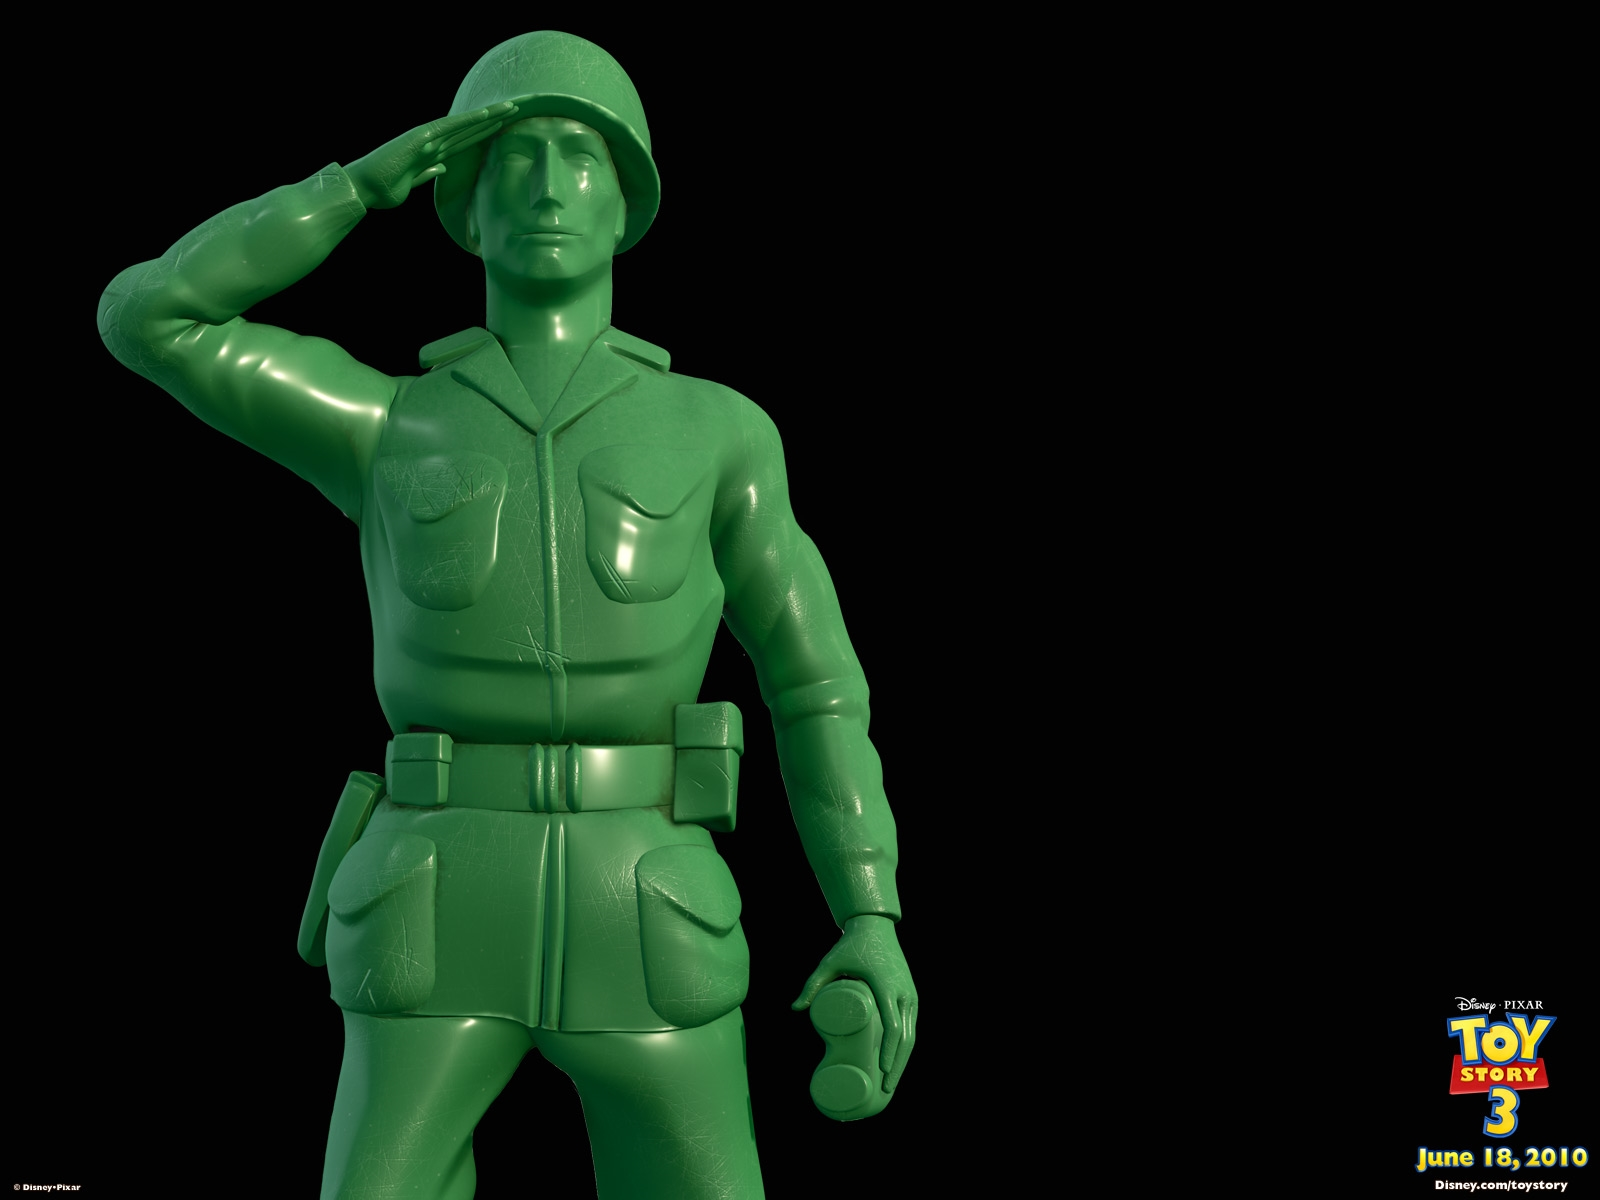 soldiers army men toy story 3